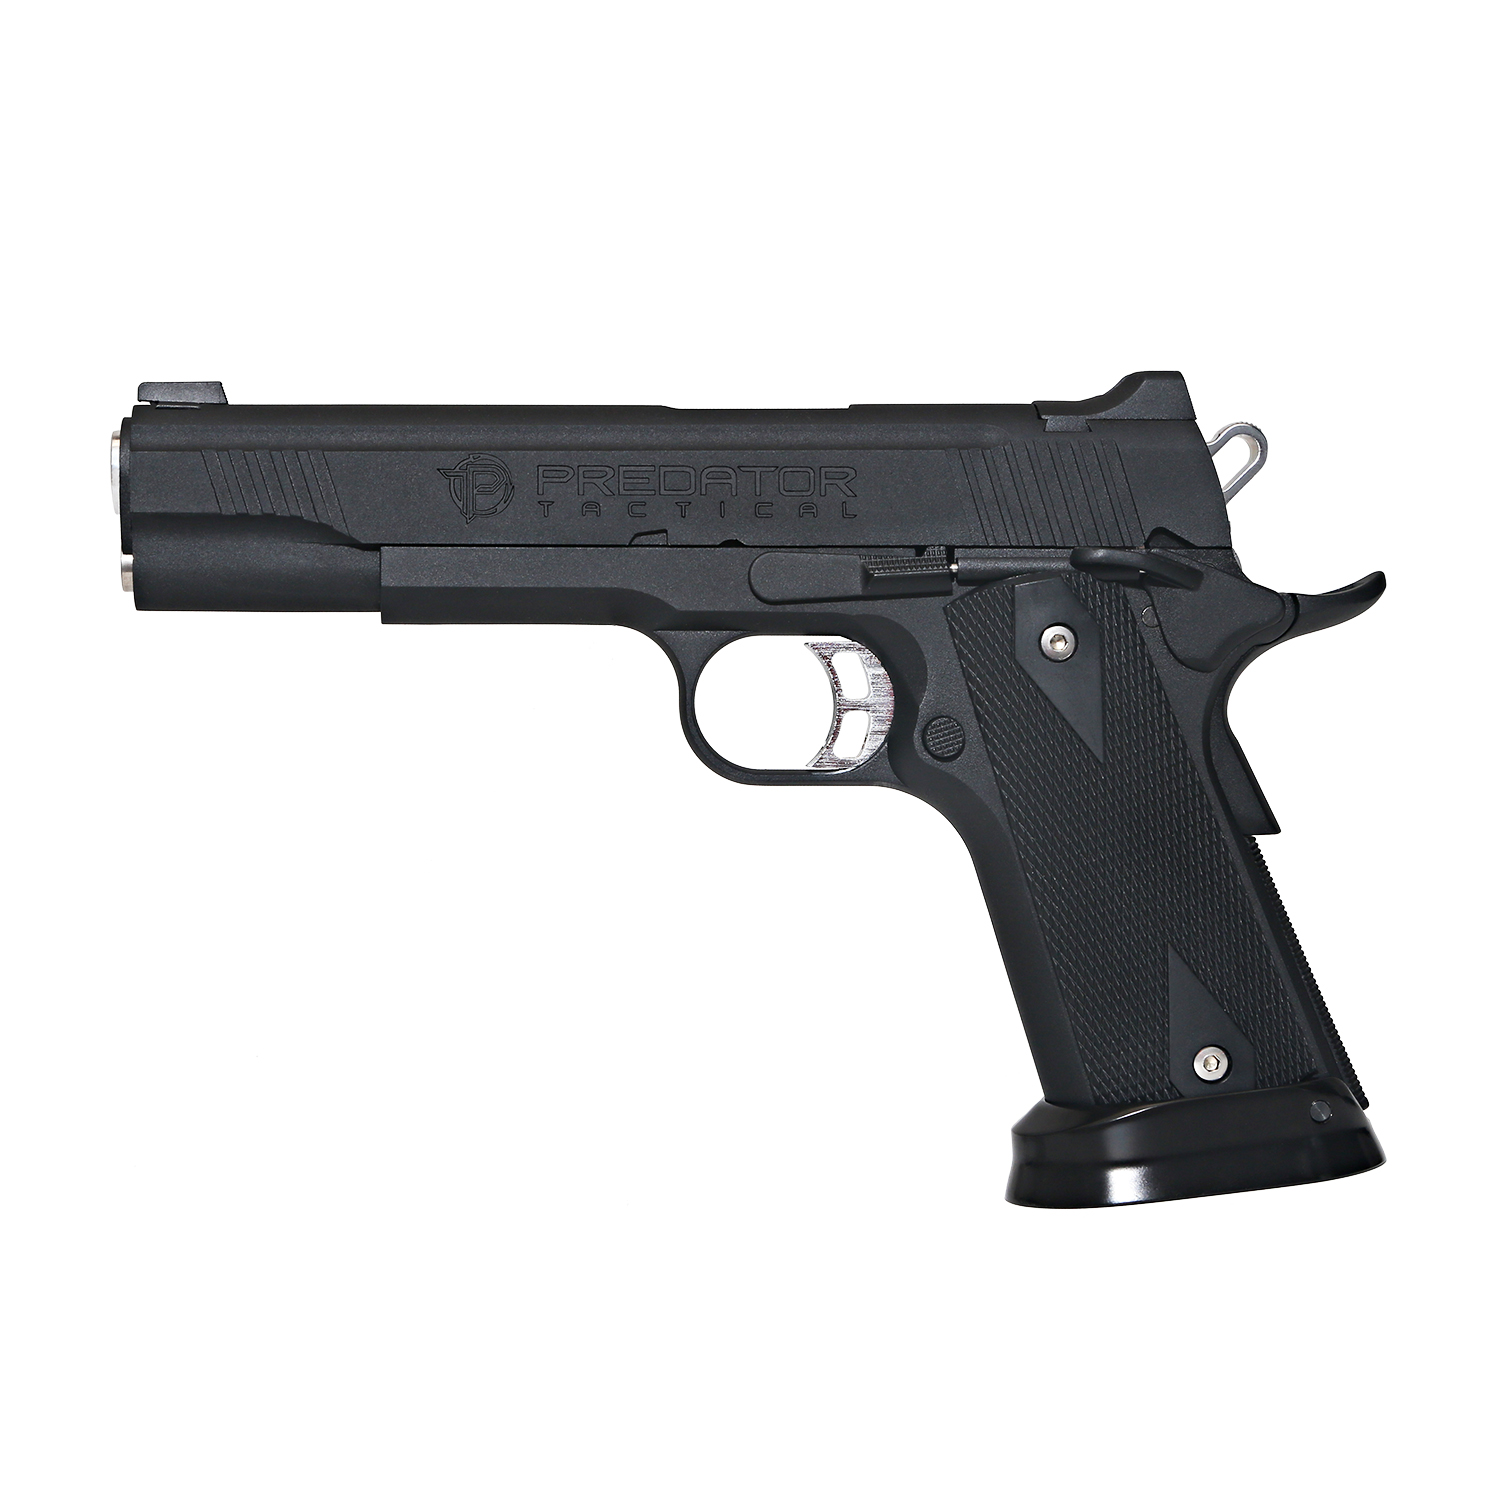 King Arms Predator Iron Shrike Full Metal GBB Pistol - Black